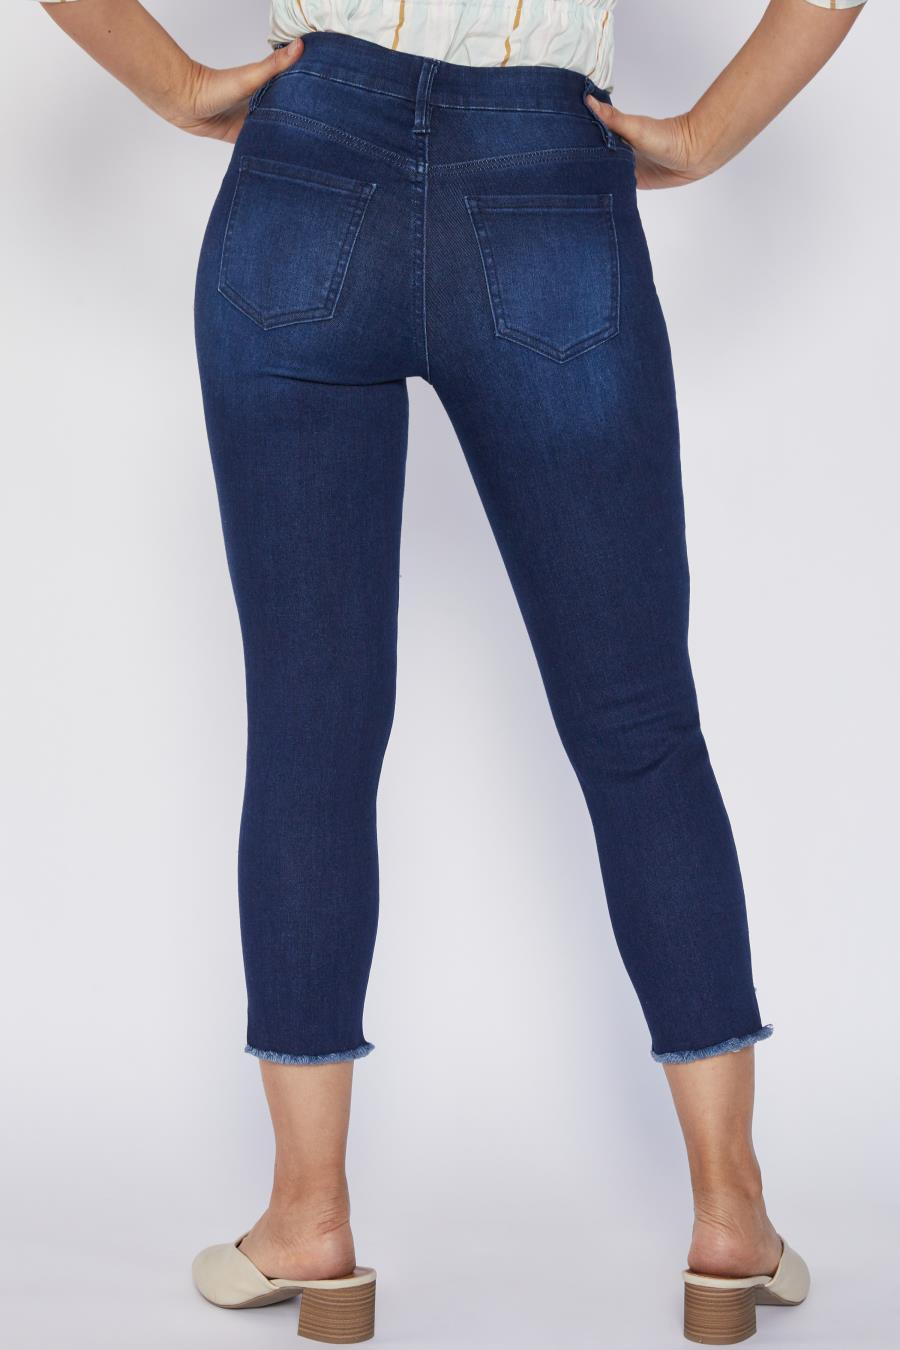 Women Petite Curvy Fit Slanted Ankle Jean Made With Recycled Fibers